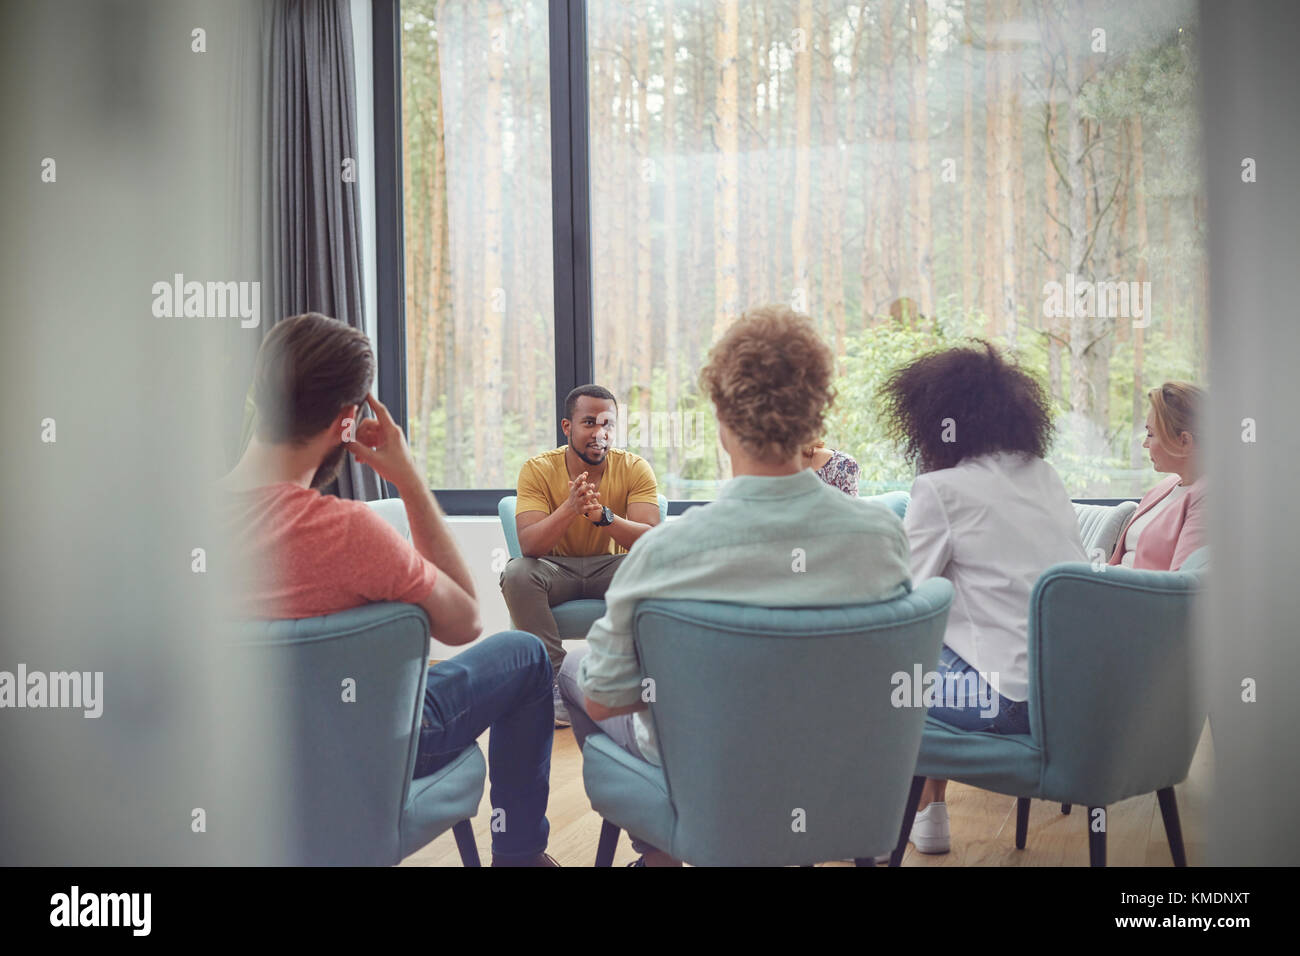 Man talking in group therapy session - Stock Image